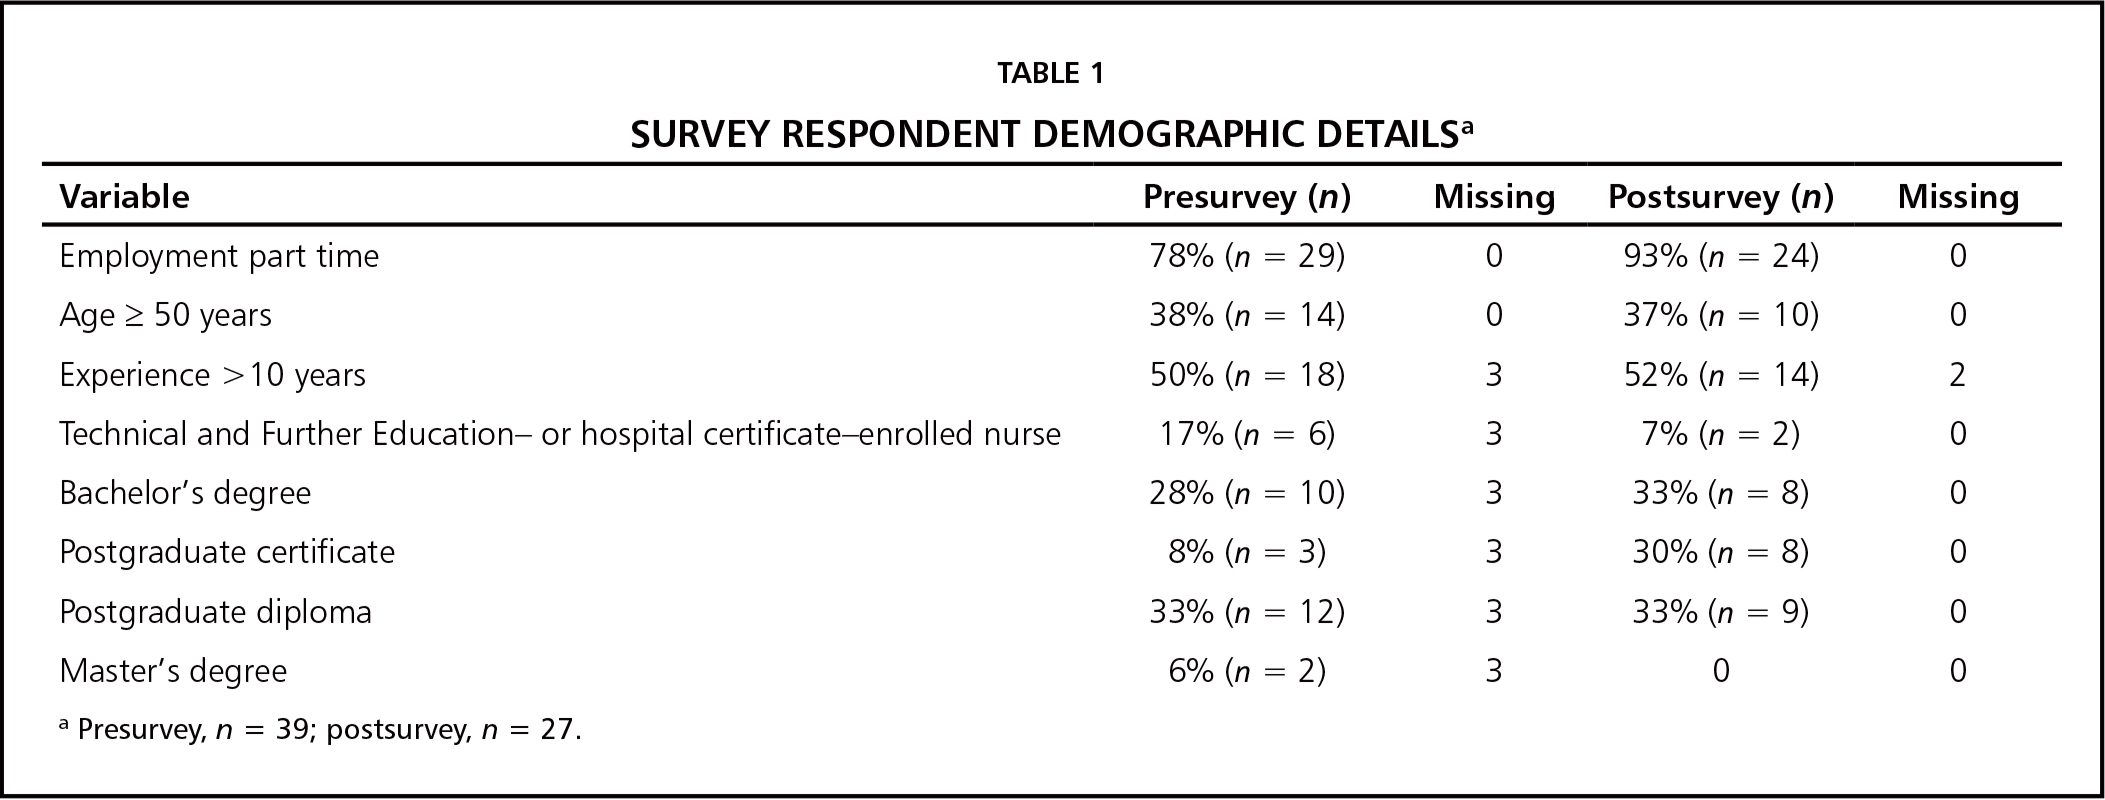 Survey Respondent Demographic Detailsa